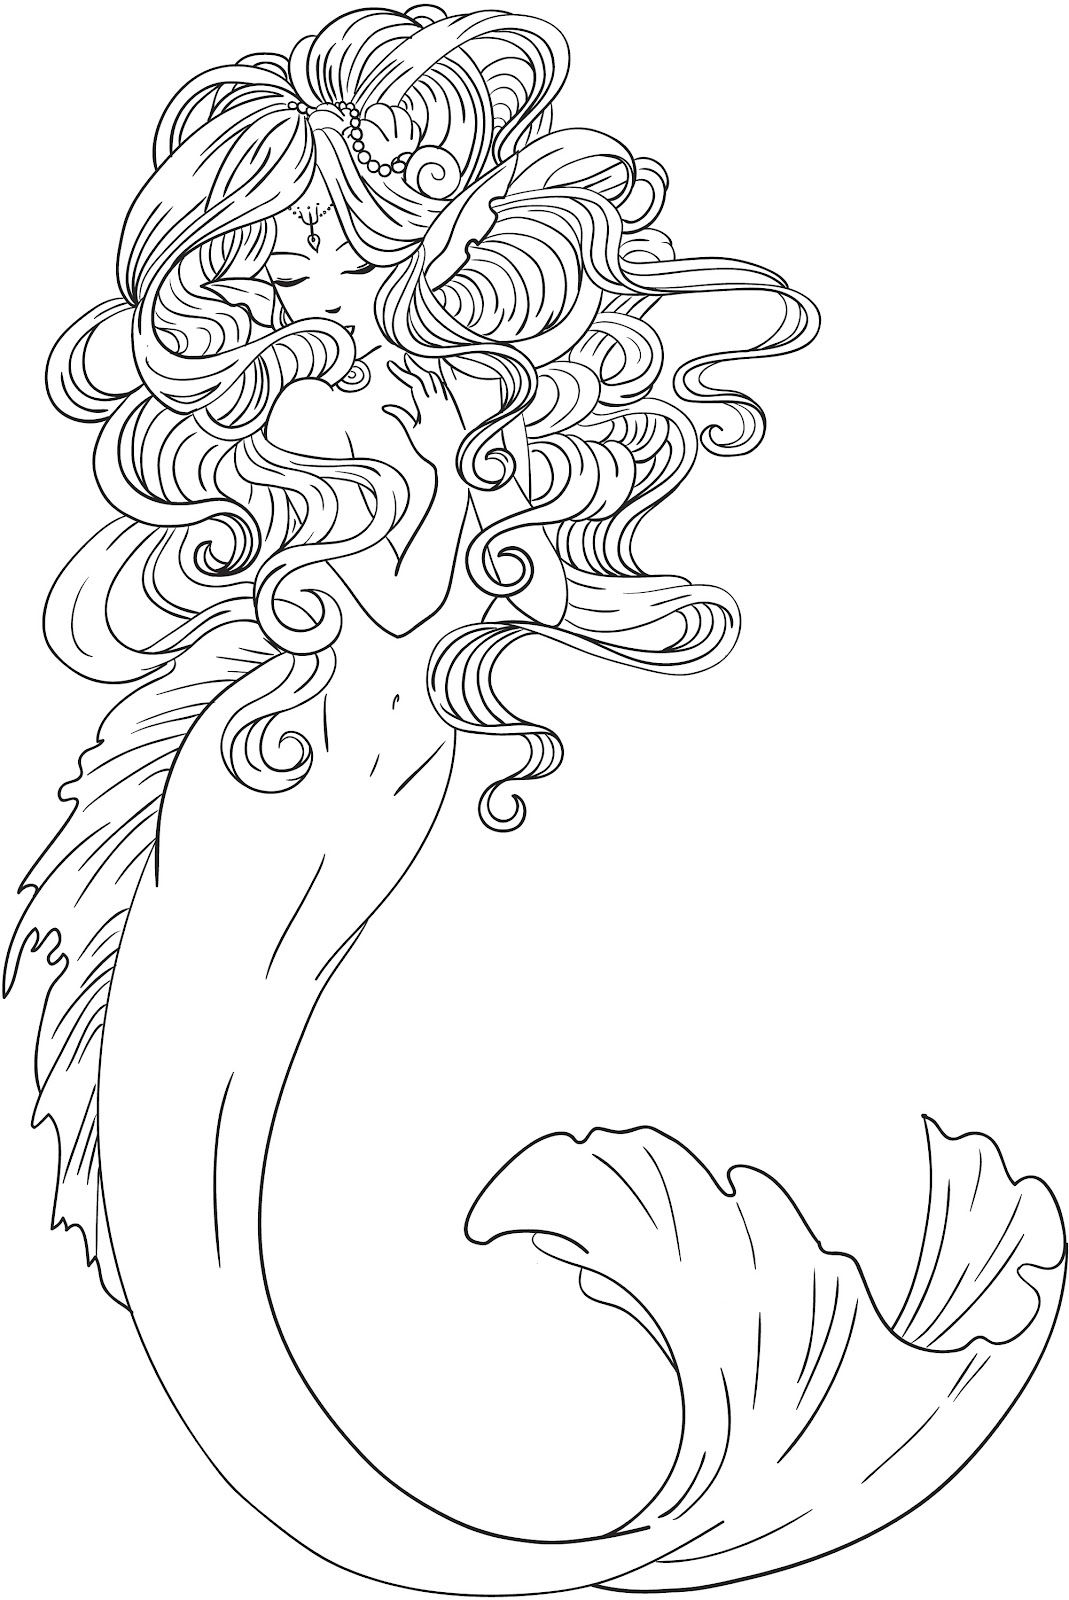 fantasycoloringpagesforadults Freebie mermaid colouring